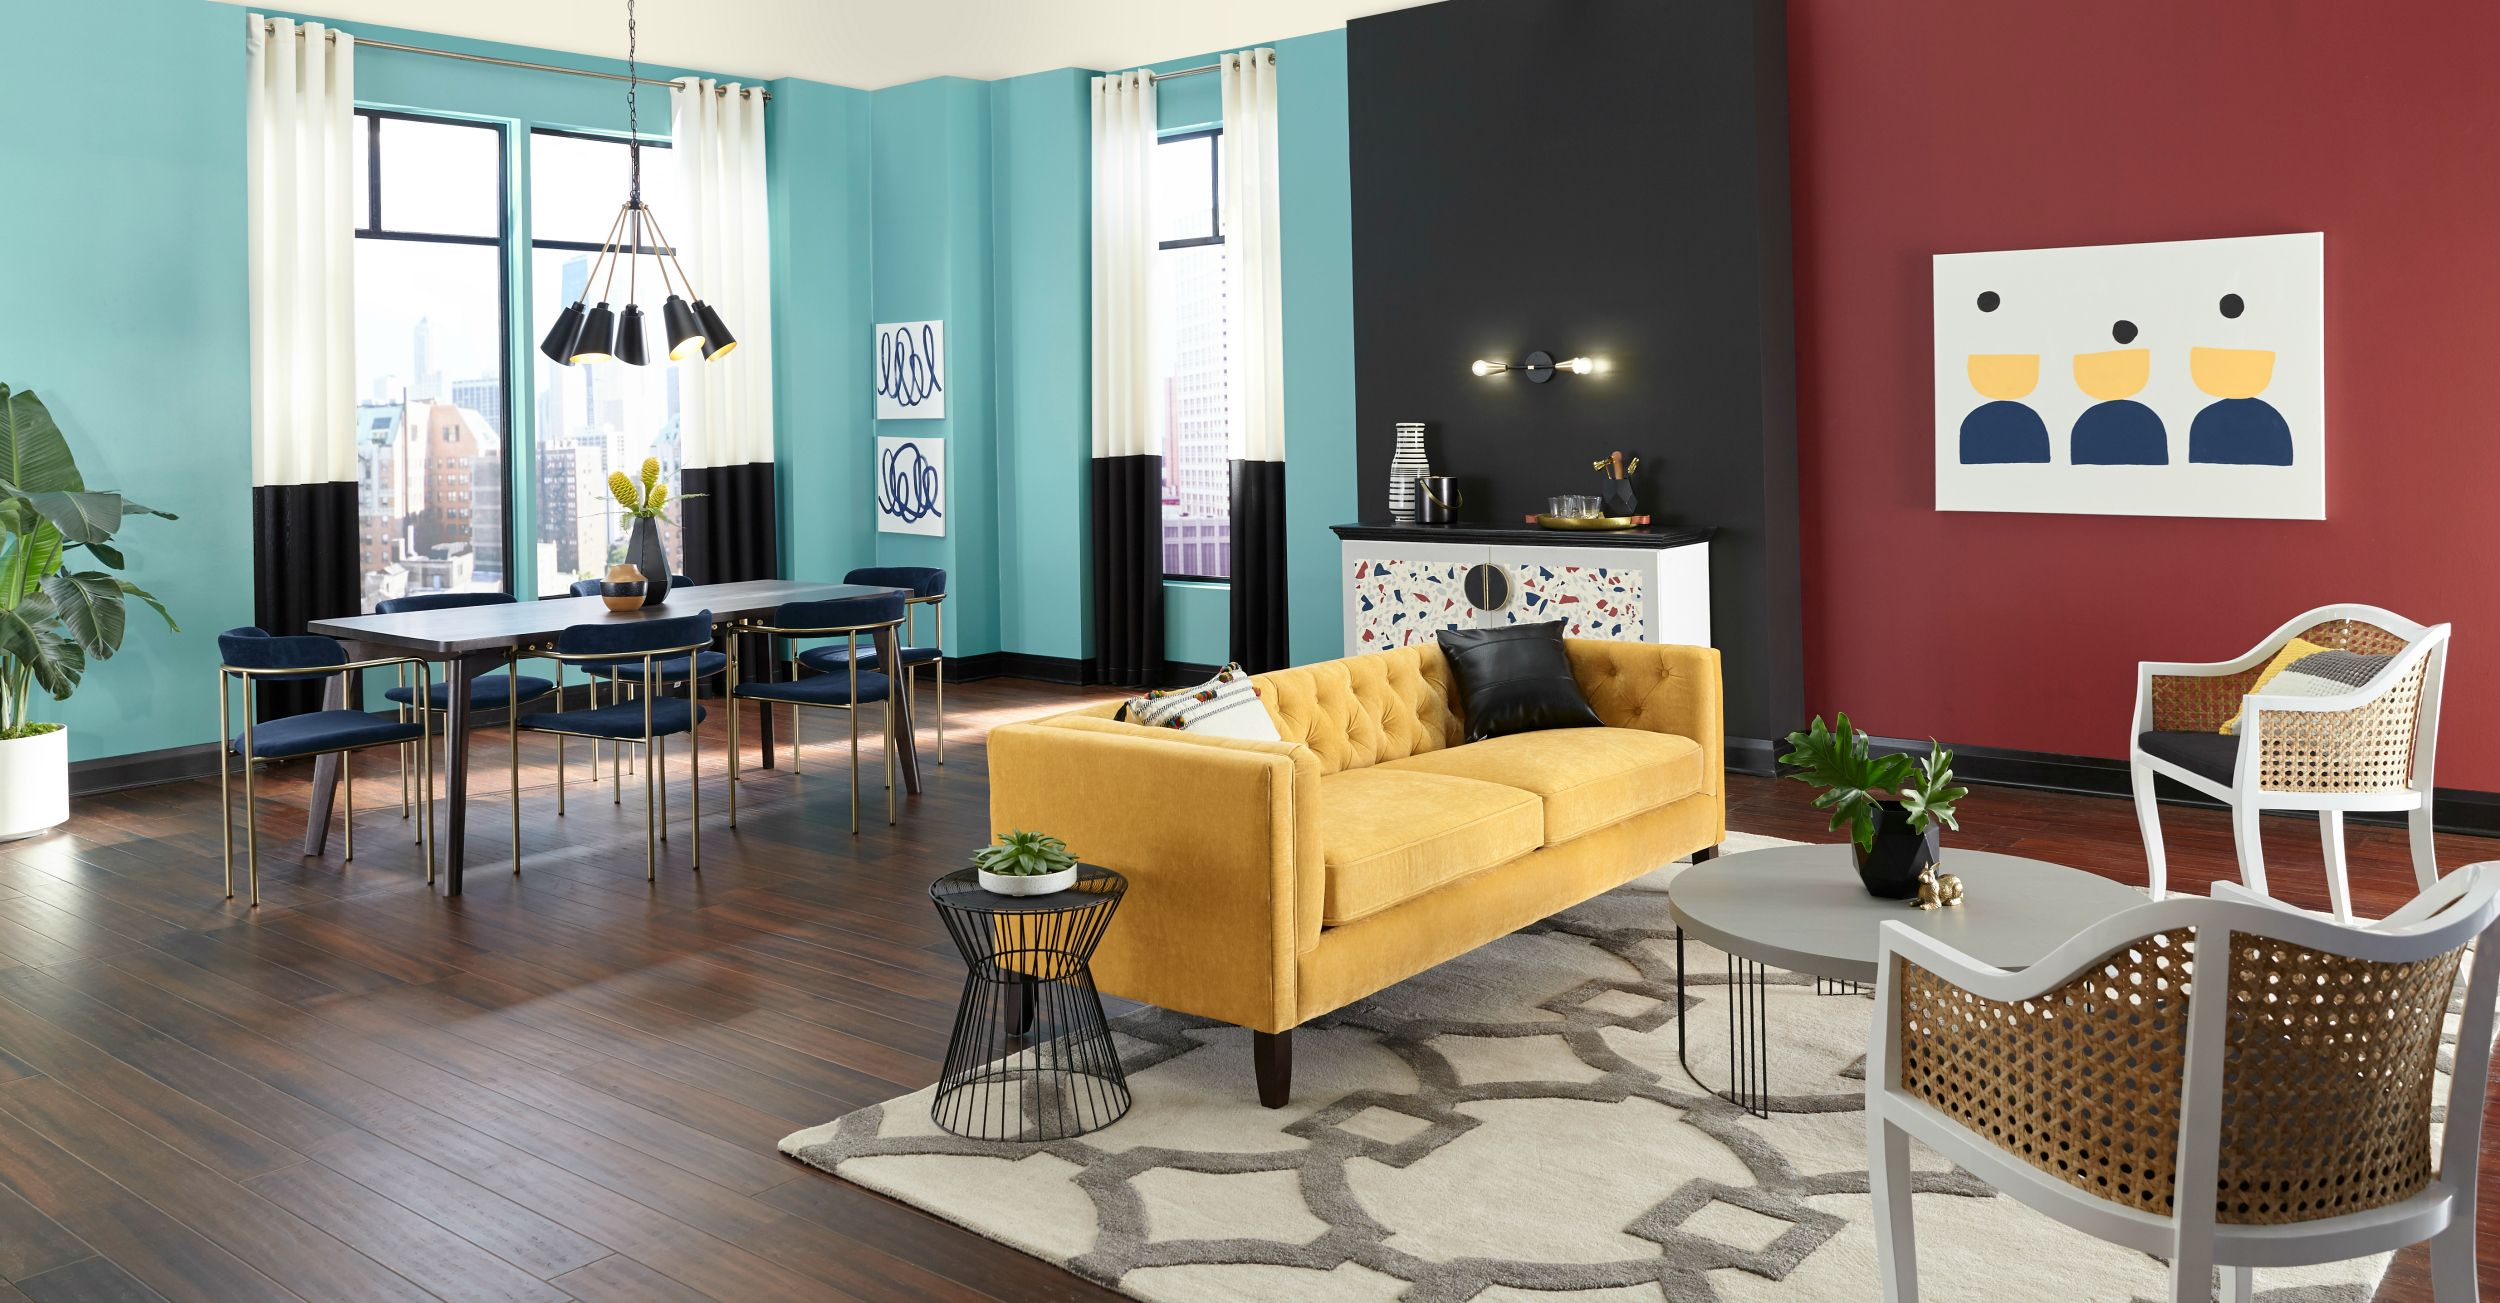 HGTV HOME By Sherwin Williams 2019 Color Of The Year Is